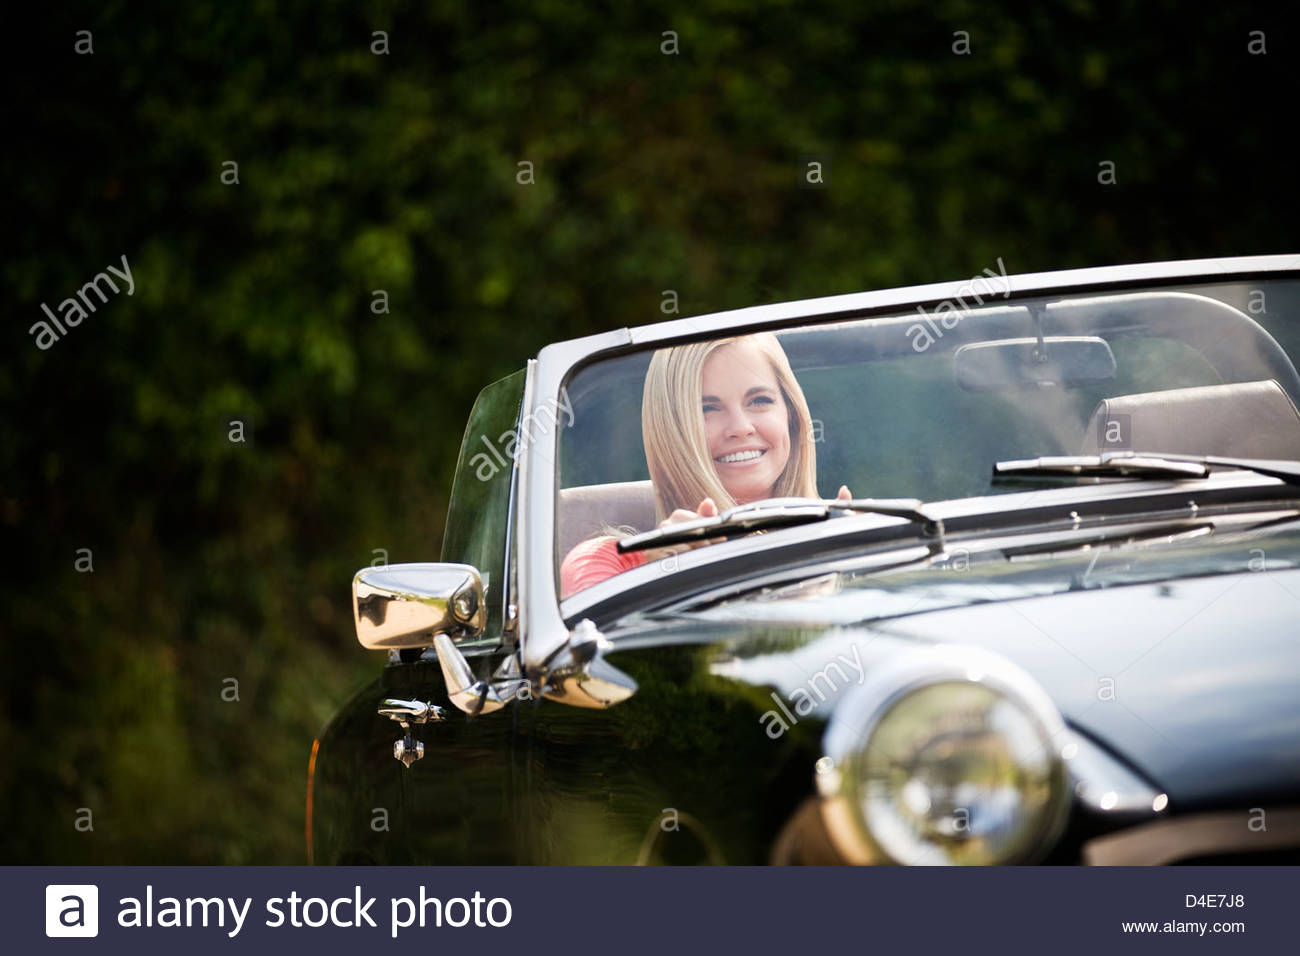 A young woman driving a black sports car - Stock Image